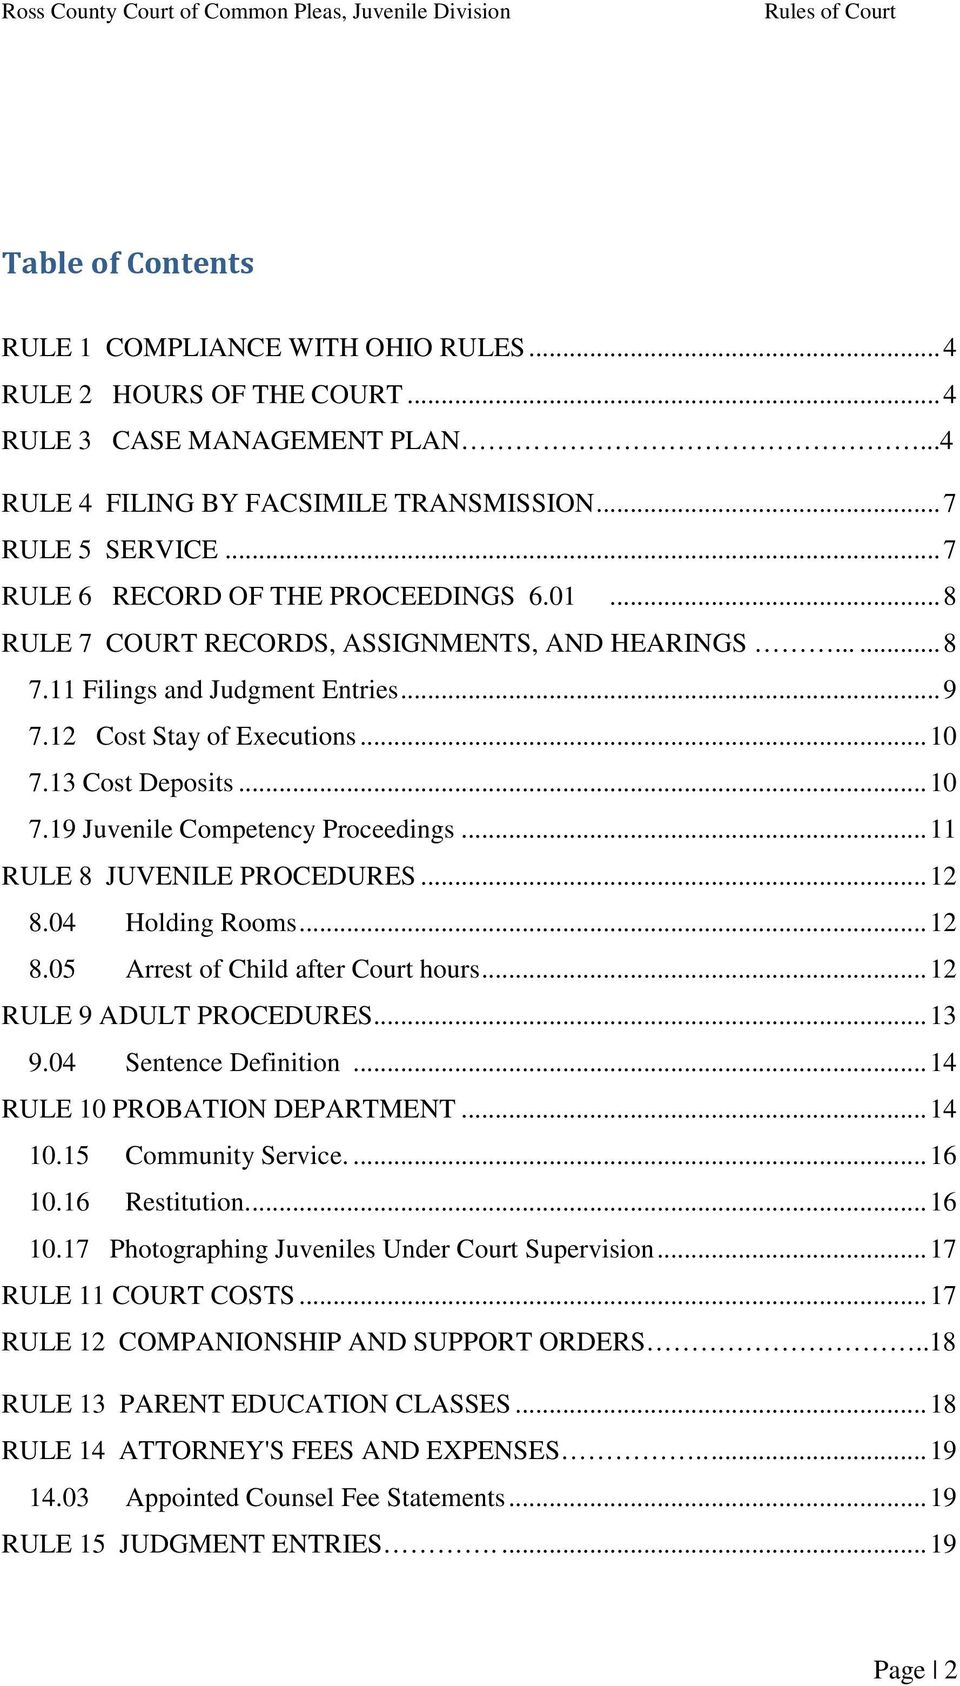 .. 10 7.19 Juvenile Competency Proceedings... 11 RULE 8 JUVENILE PROCEDURES... 12 8.04 Holding Rooms... 12 8.05 Arrest of Child after Court hours... 12 RULE 9 ADULT PROCEDURES... 13 9.